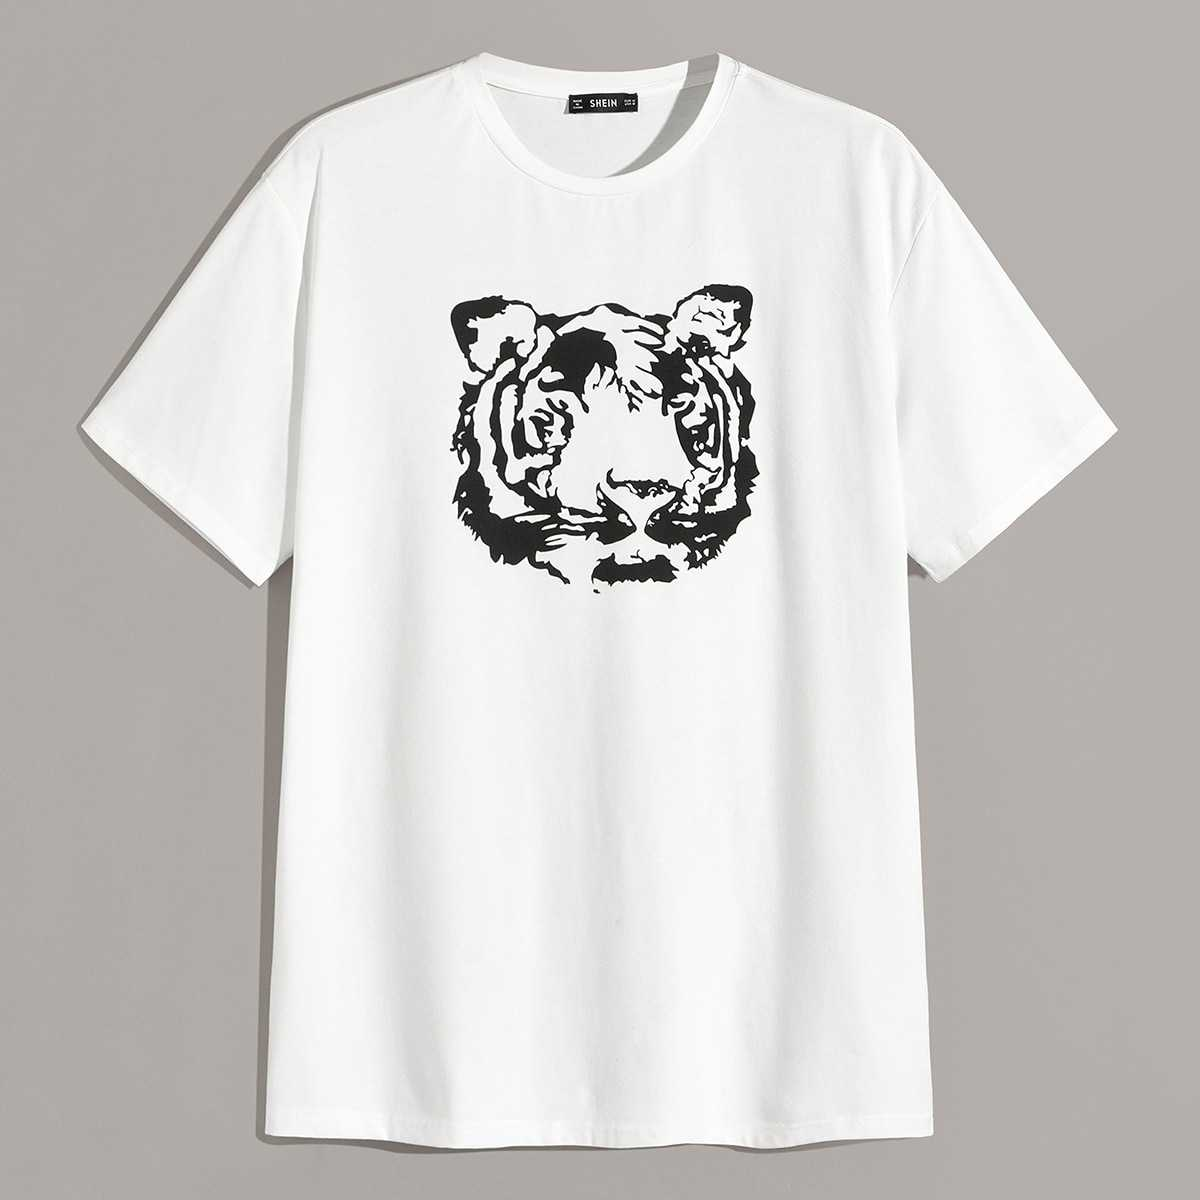 Guys Drop Shoulder Tiger Print Tee in White by ROMWE on GOOFASH